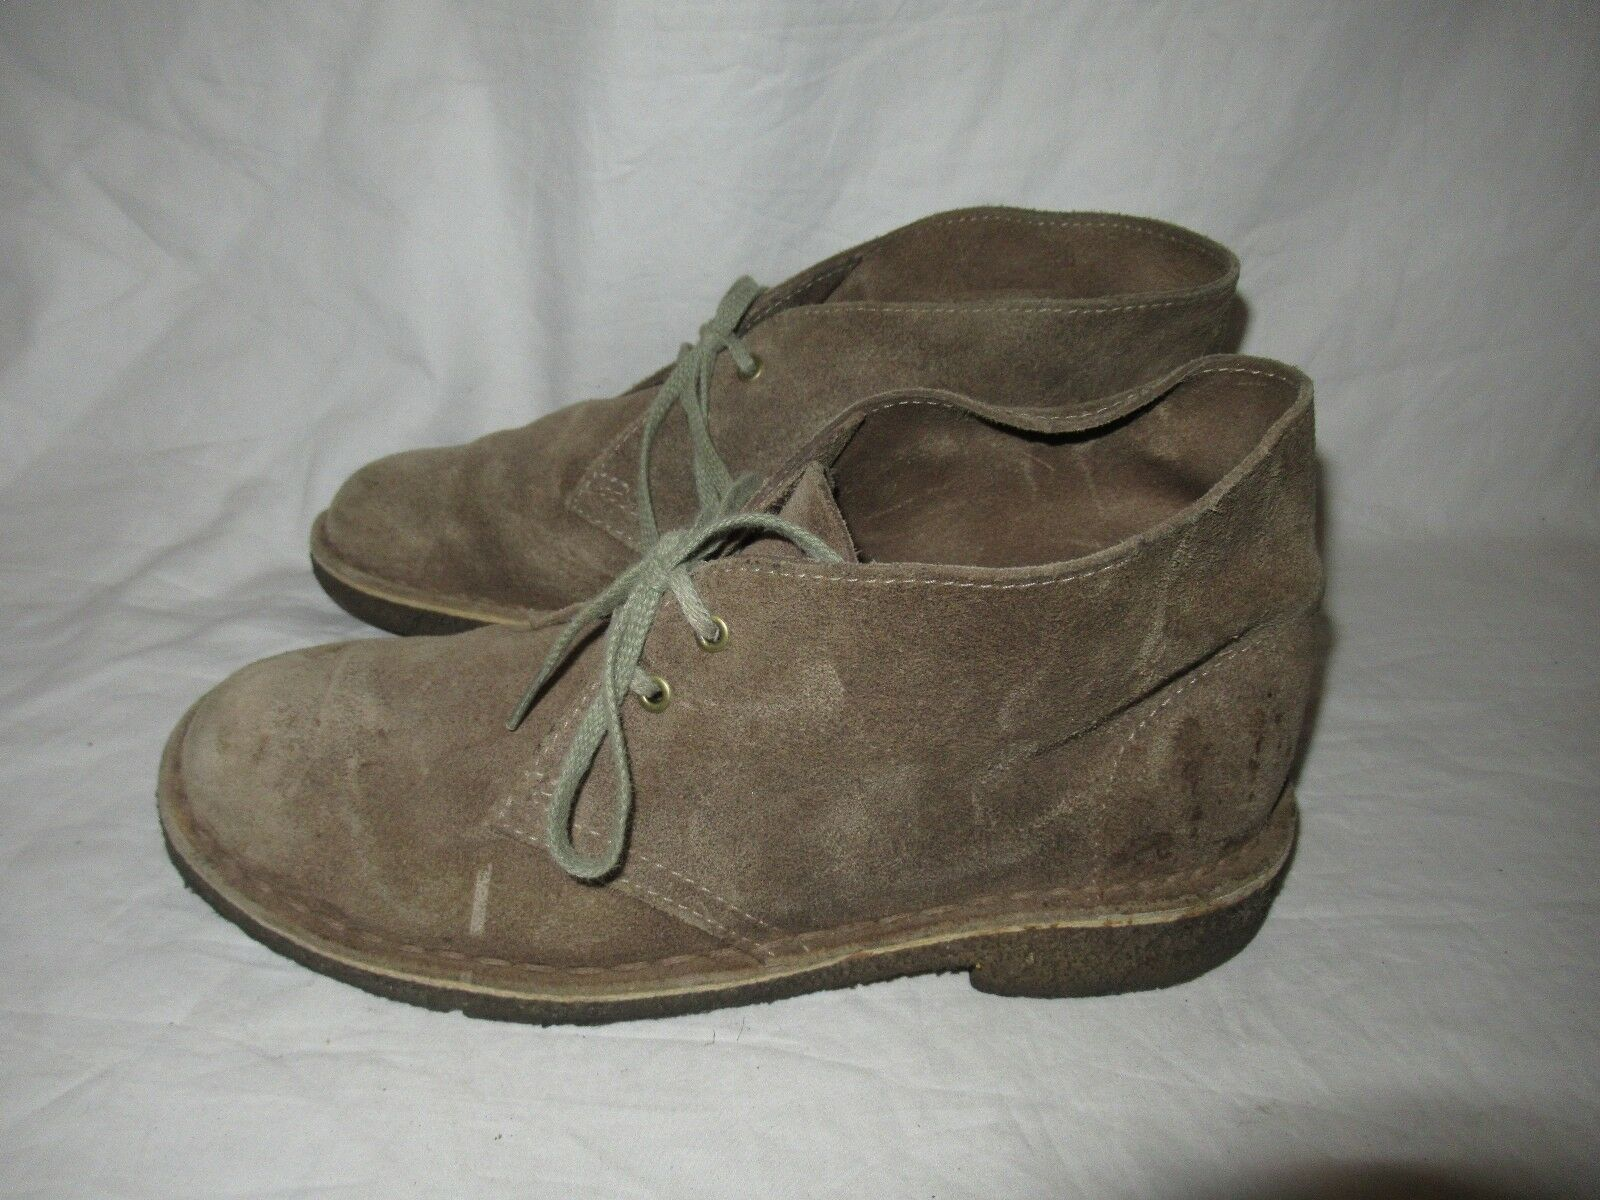 Clarks womens boots ankle Chukka Desert leather brown size 7.5 Good Shape